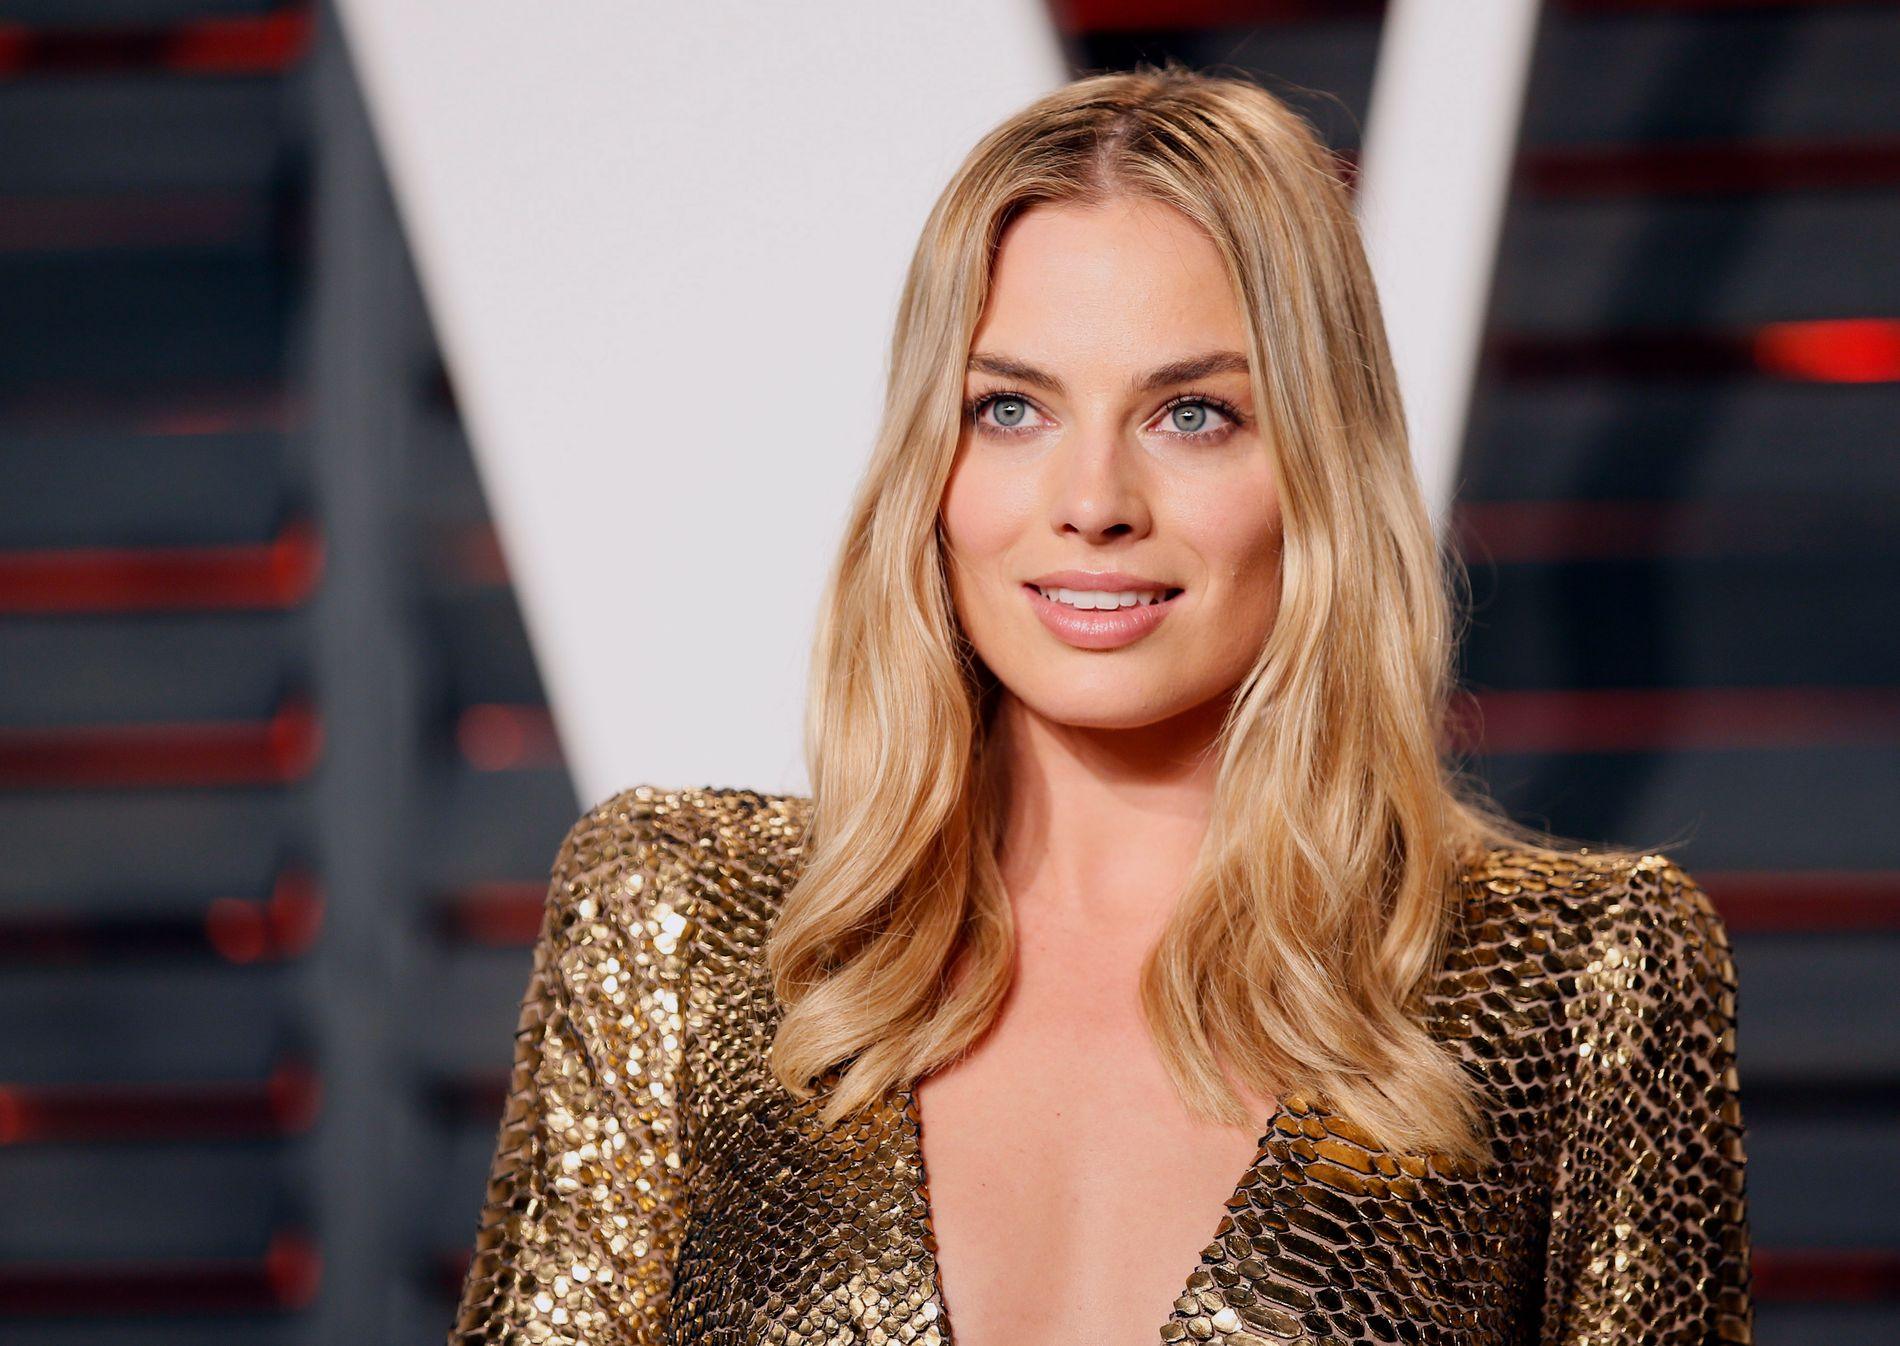 Actress Margot Robbie arrives at the Vanity Fair Oscar Party in Beverly Hills, California February 28, 2016. REUTERS/Danny Moloshok